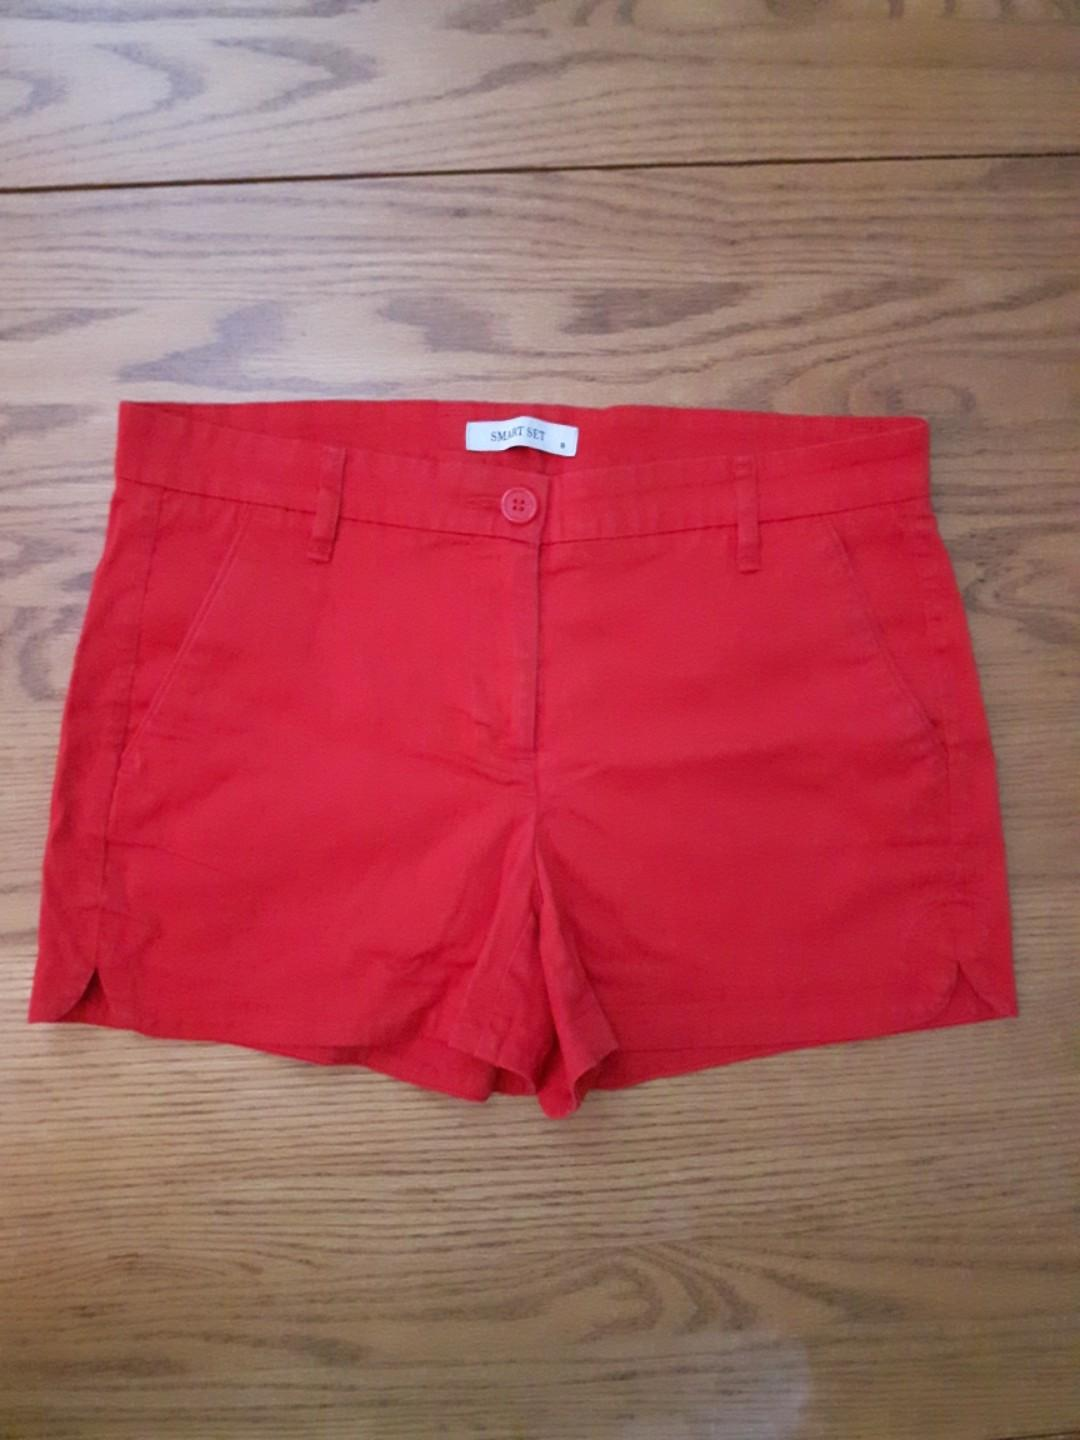 Red Shorts, Size 8